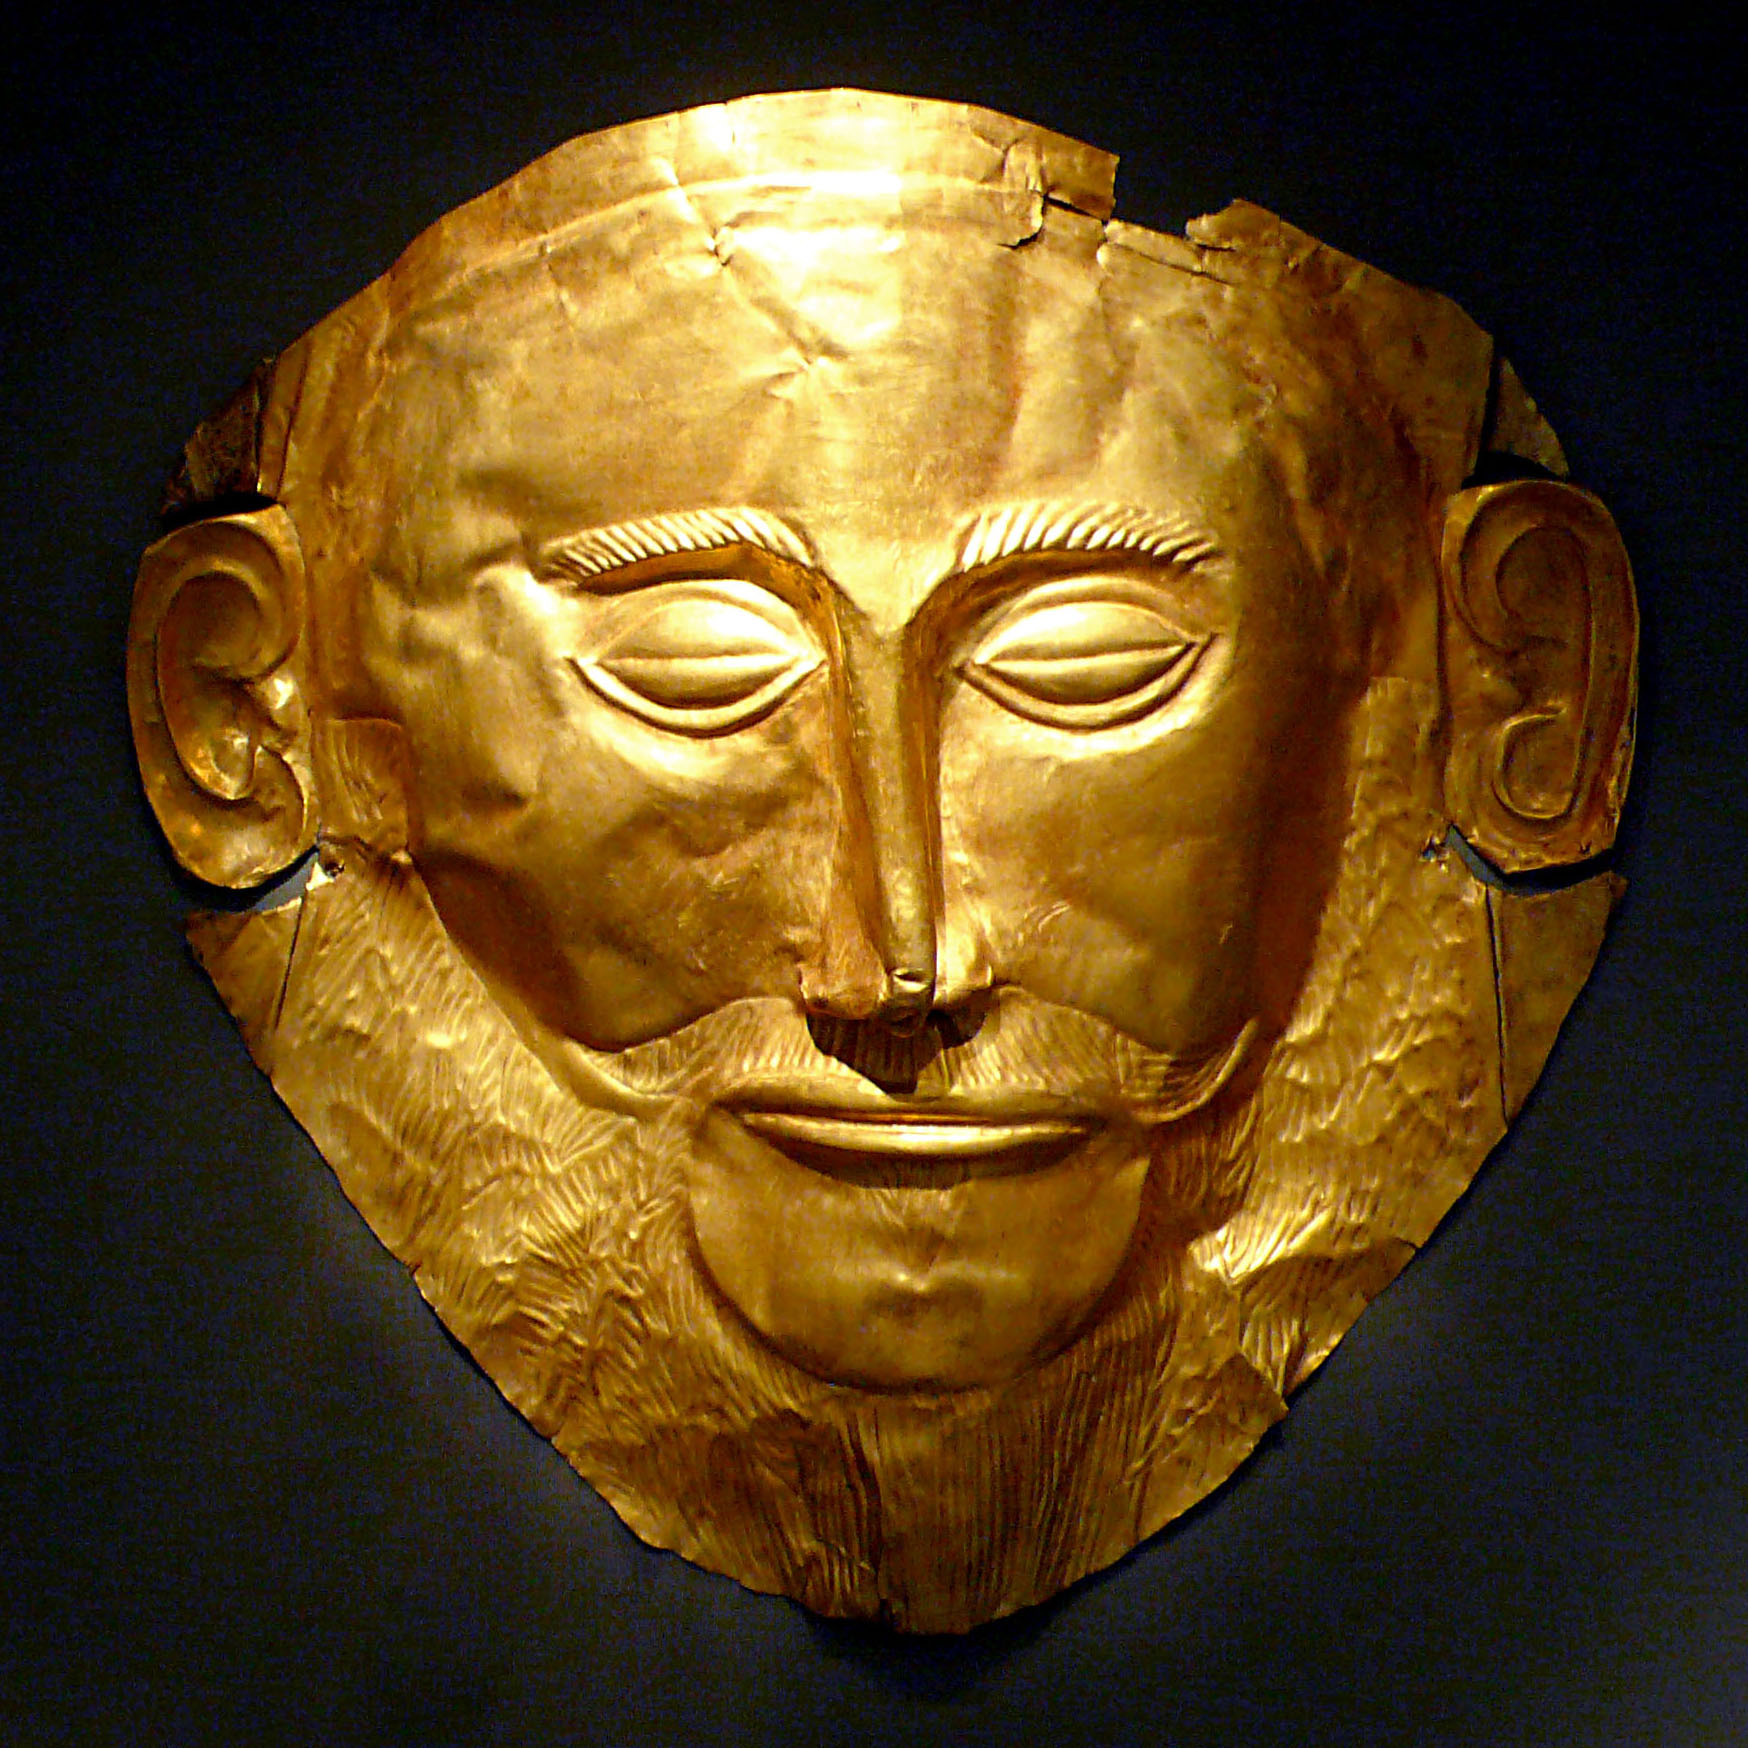 mycenae and agamemnon Agamemnon, king of mycenae and commander-in-chief of the achaean army, resembles achilles in some respects though not nearly as strong, he has a similarly hot temper.